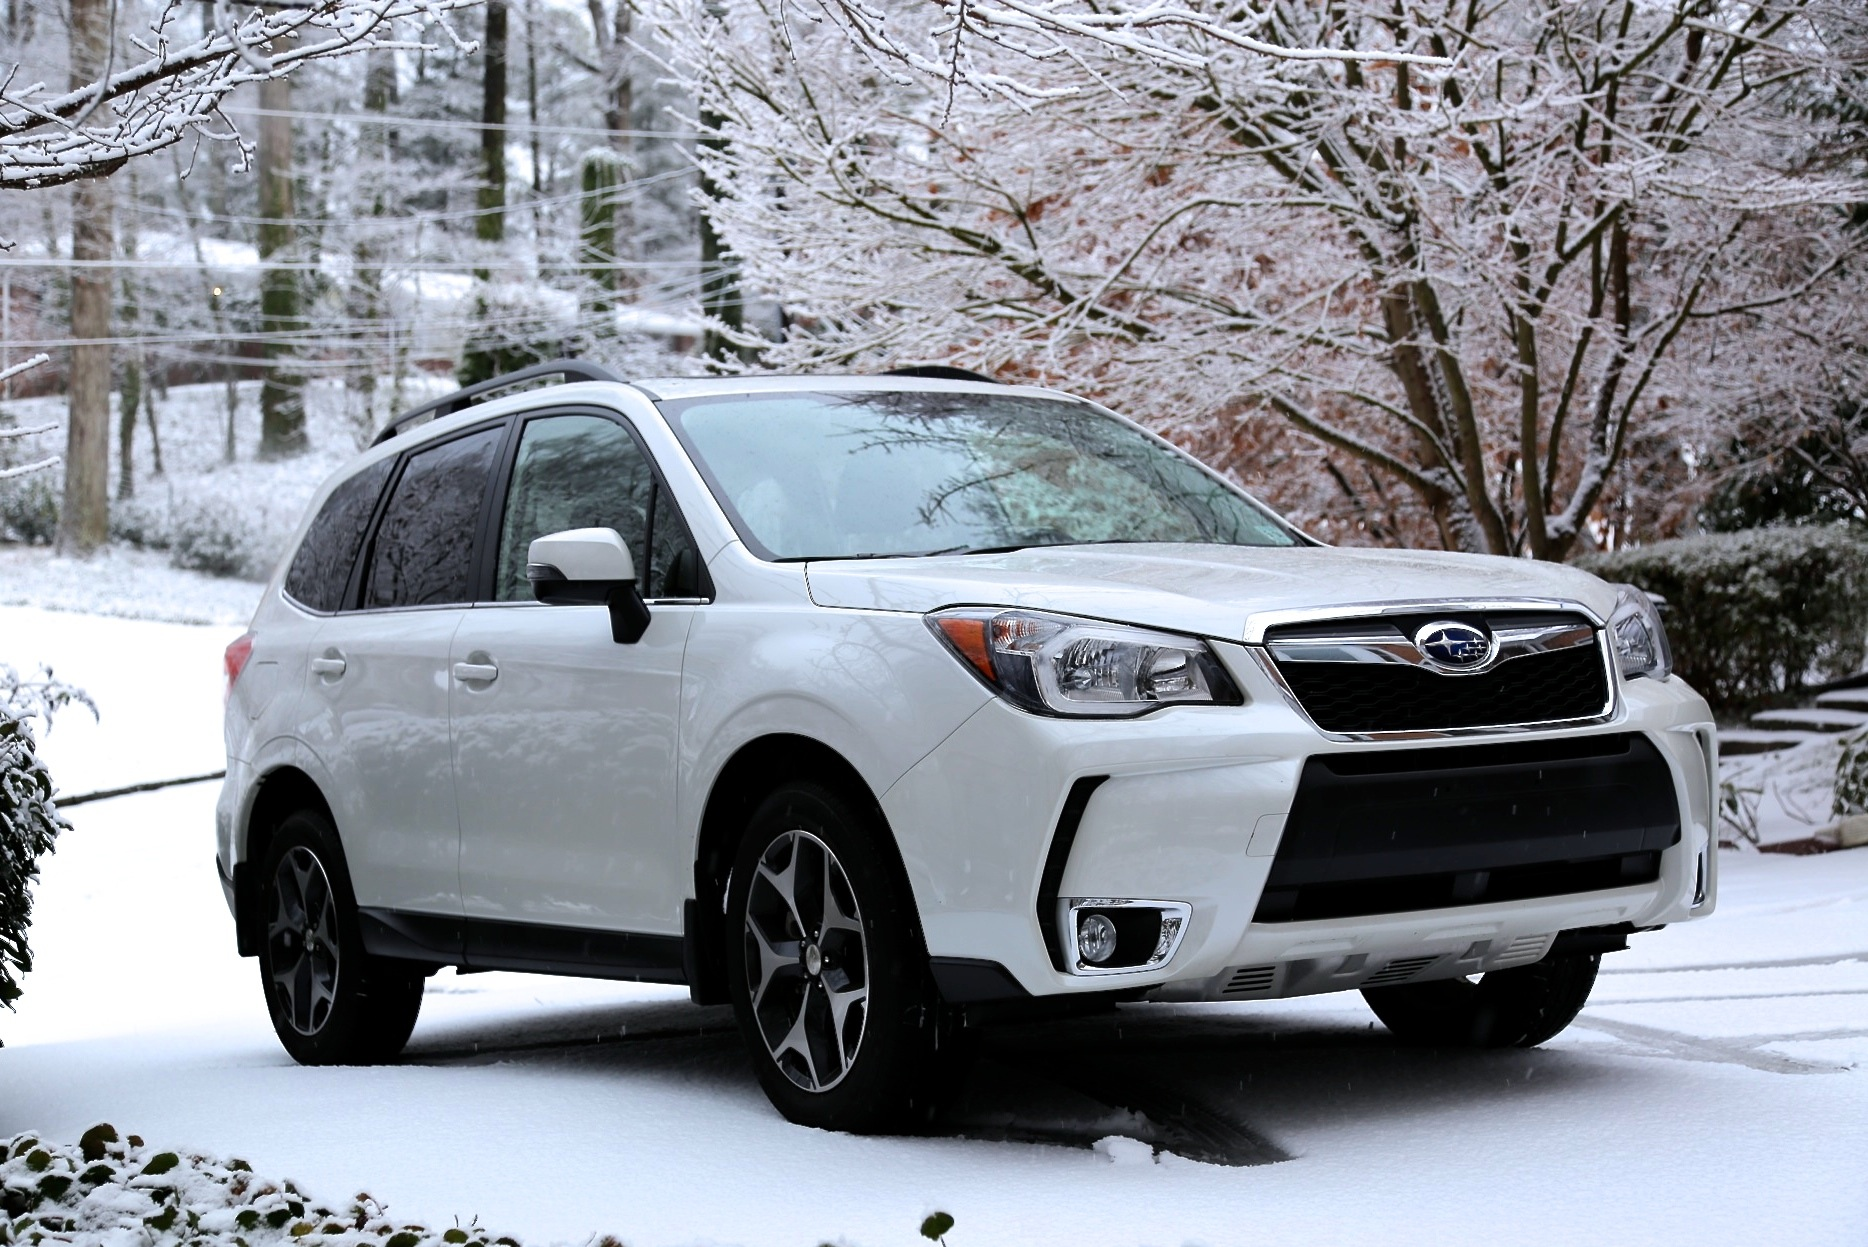 Subaru Forester Vs Subaru XV Crosstrek Which Crossover To Buy